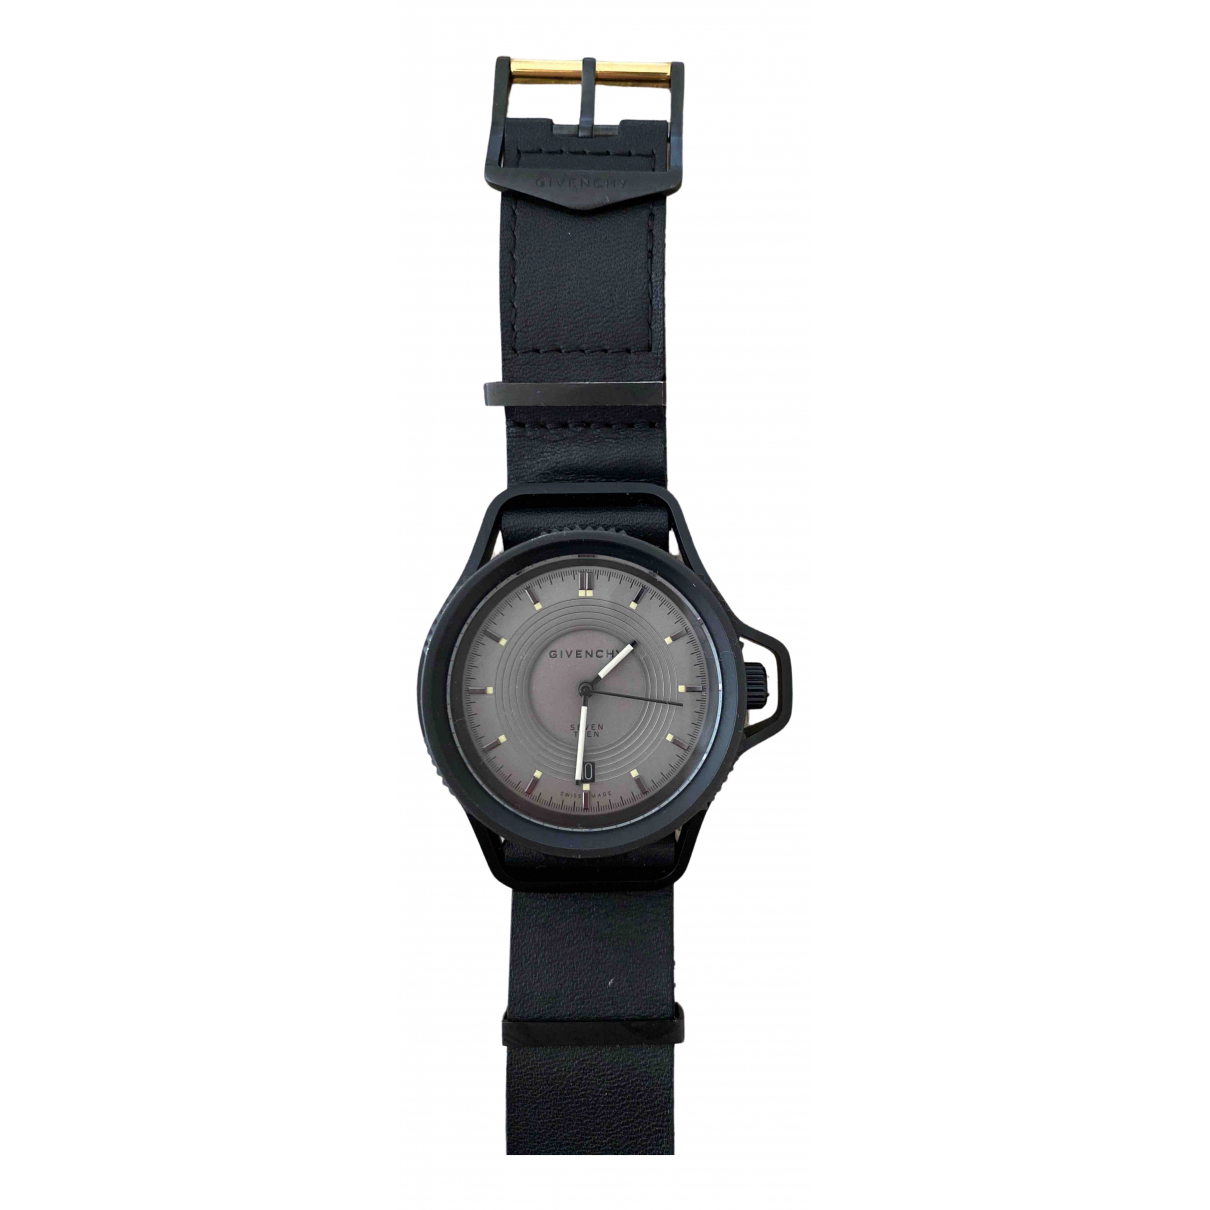 Givenchy N Silver Steel watch for Men N